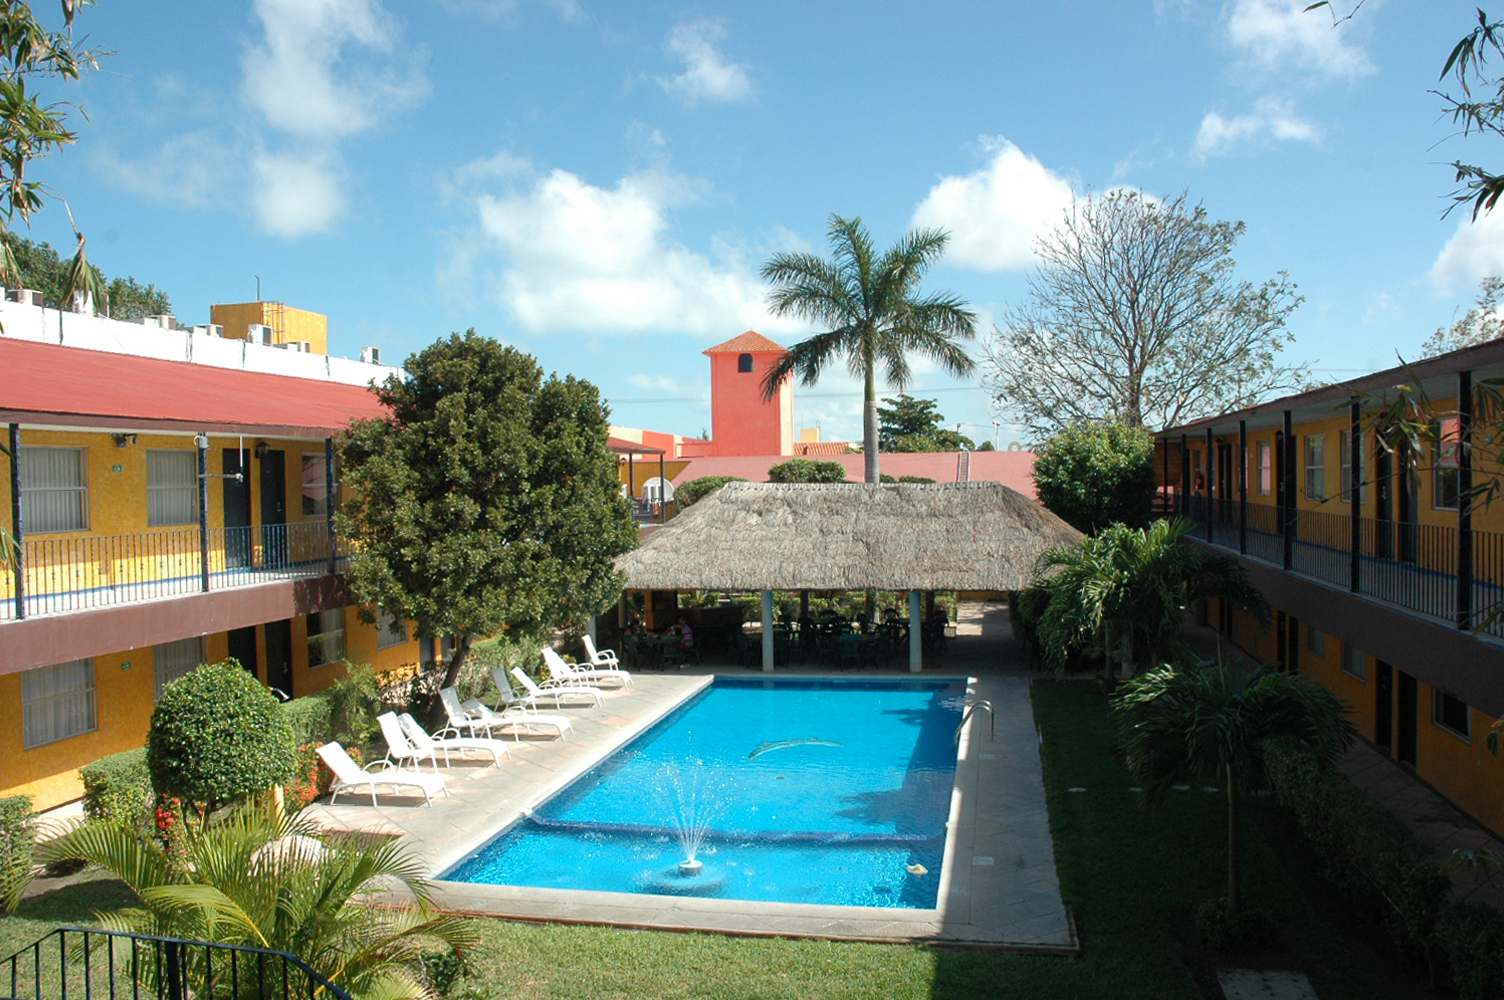 Hotel Lossandes